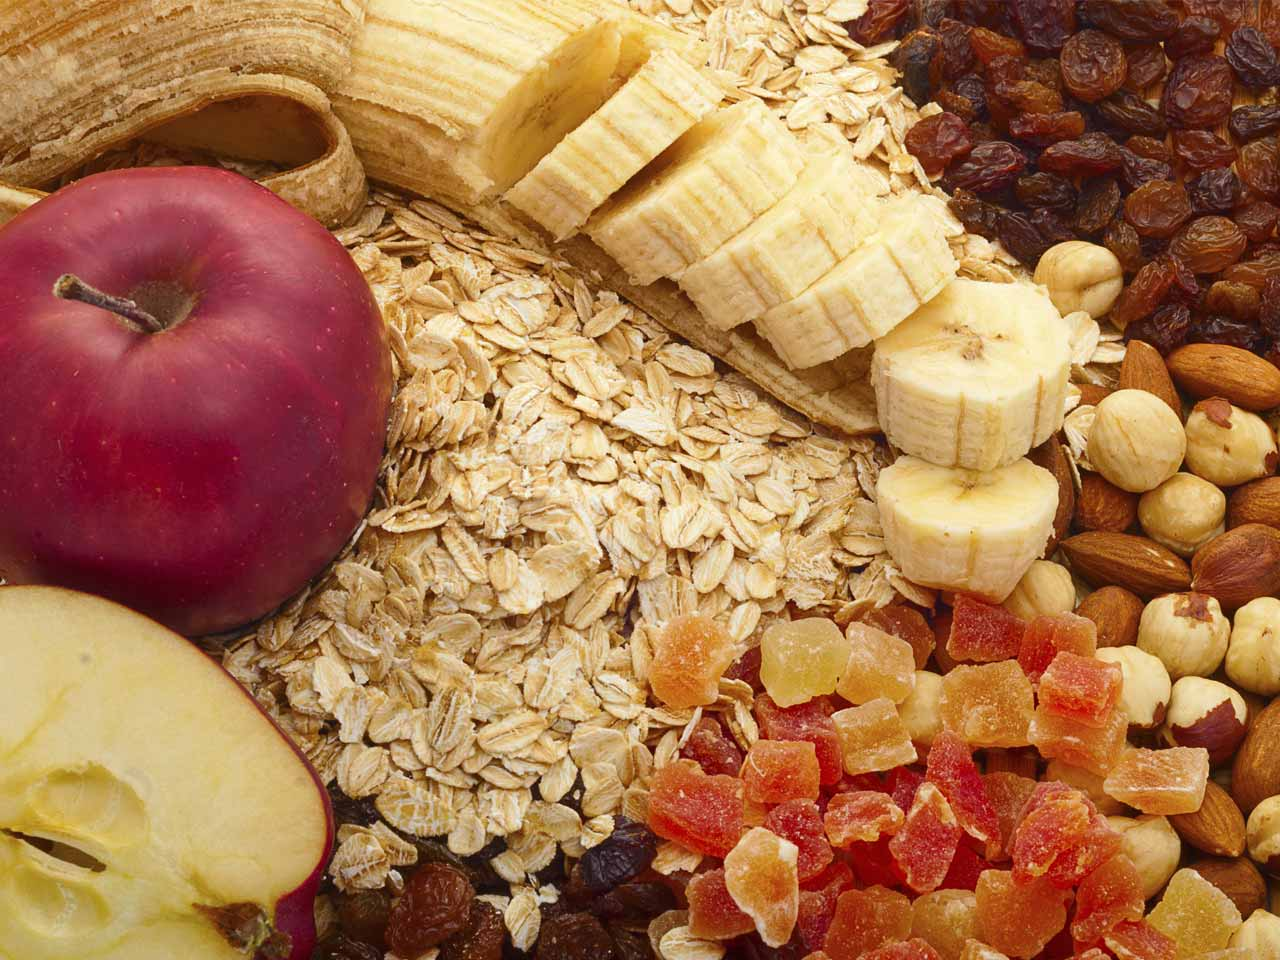 Good sources of fibre